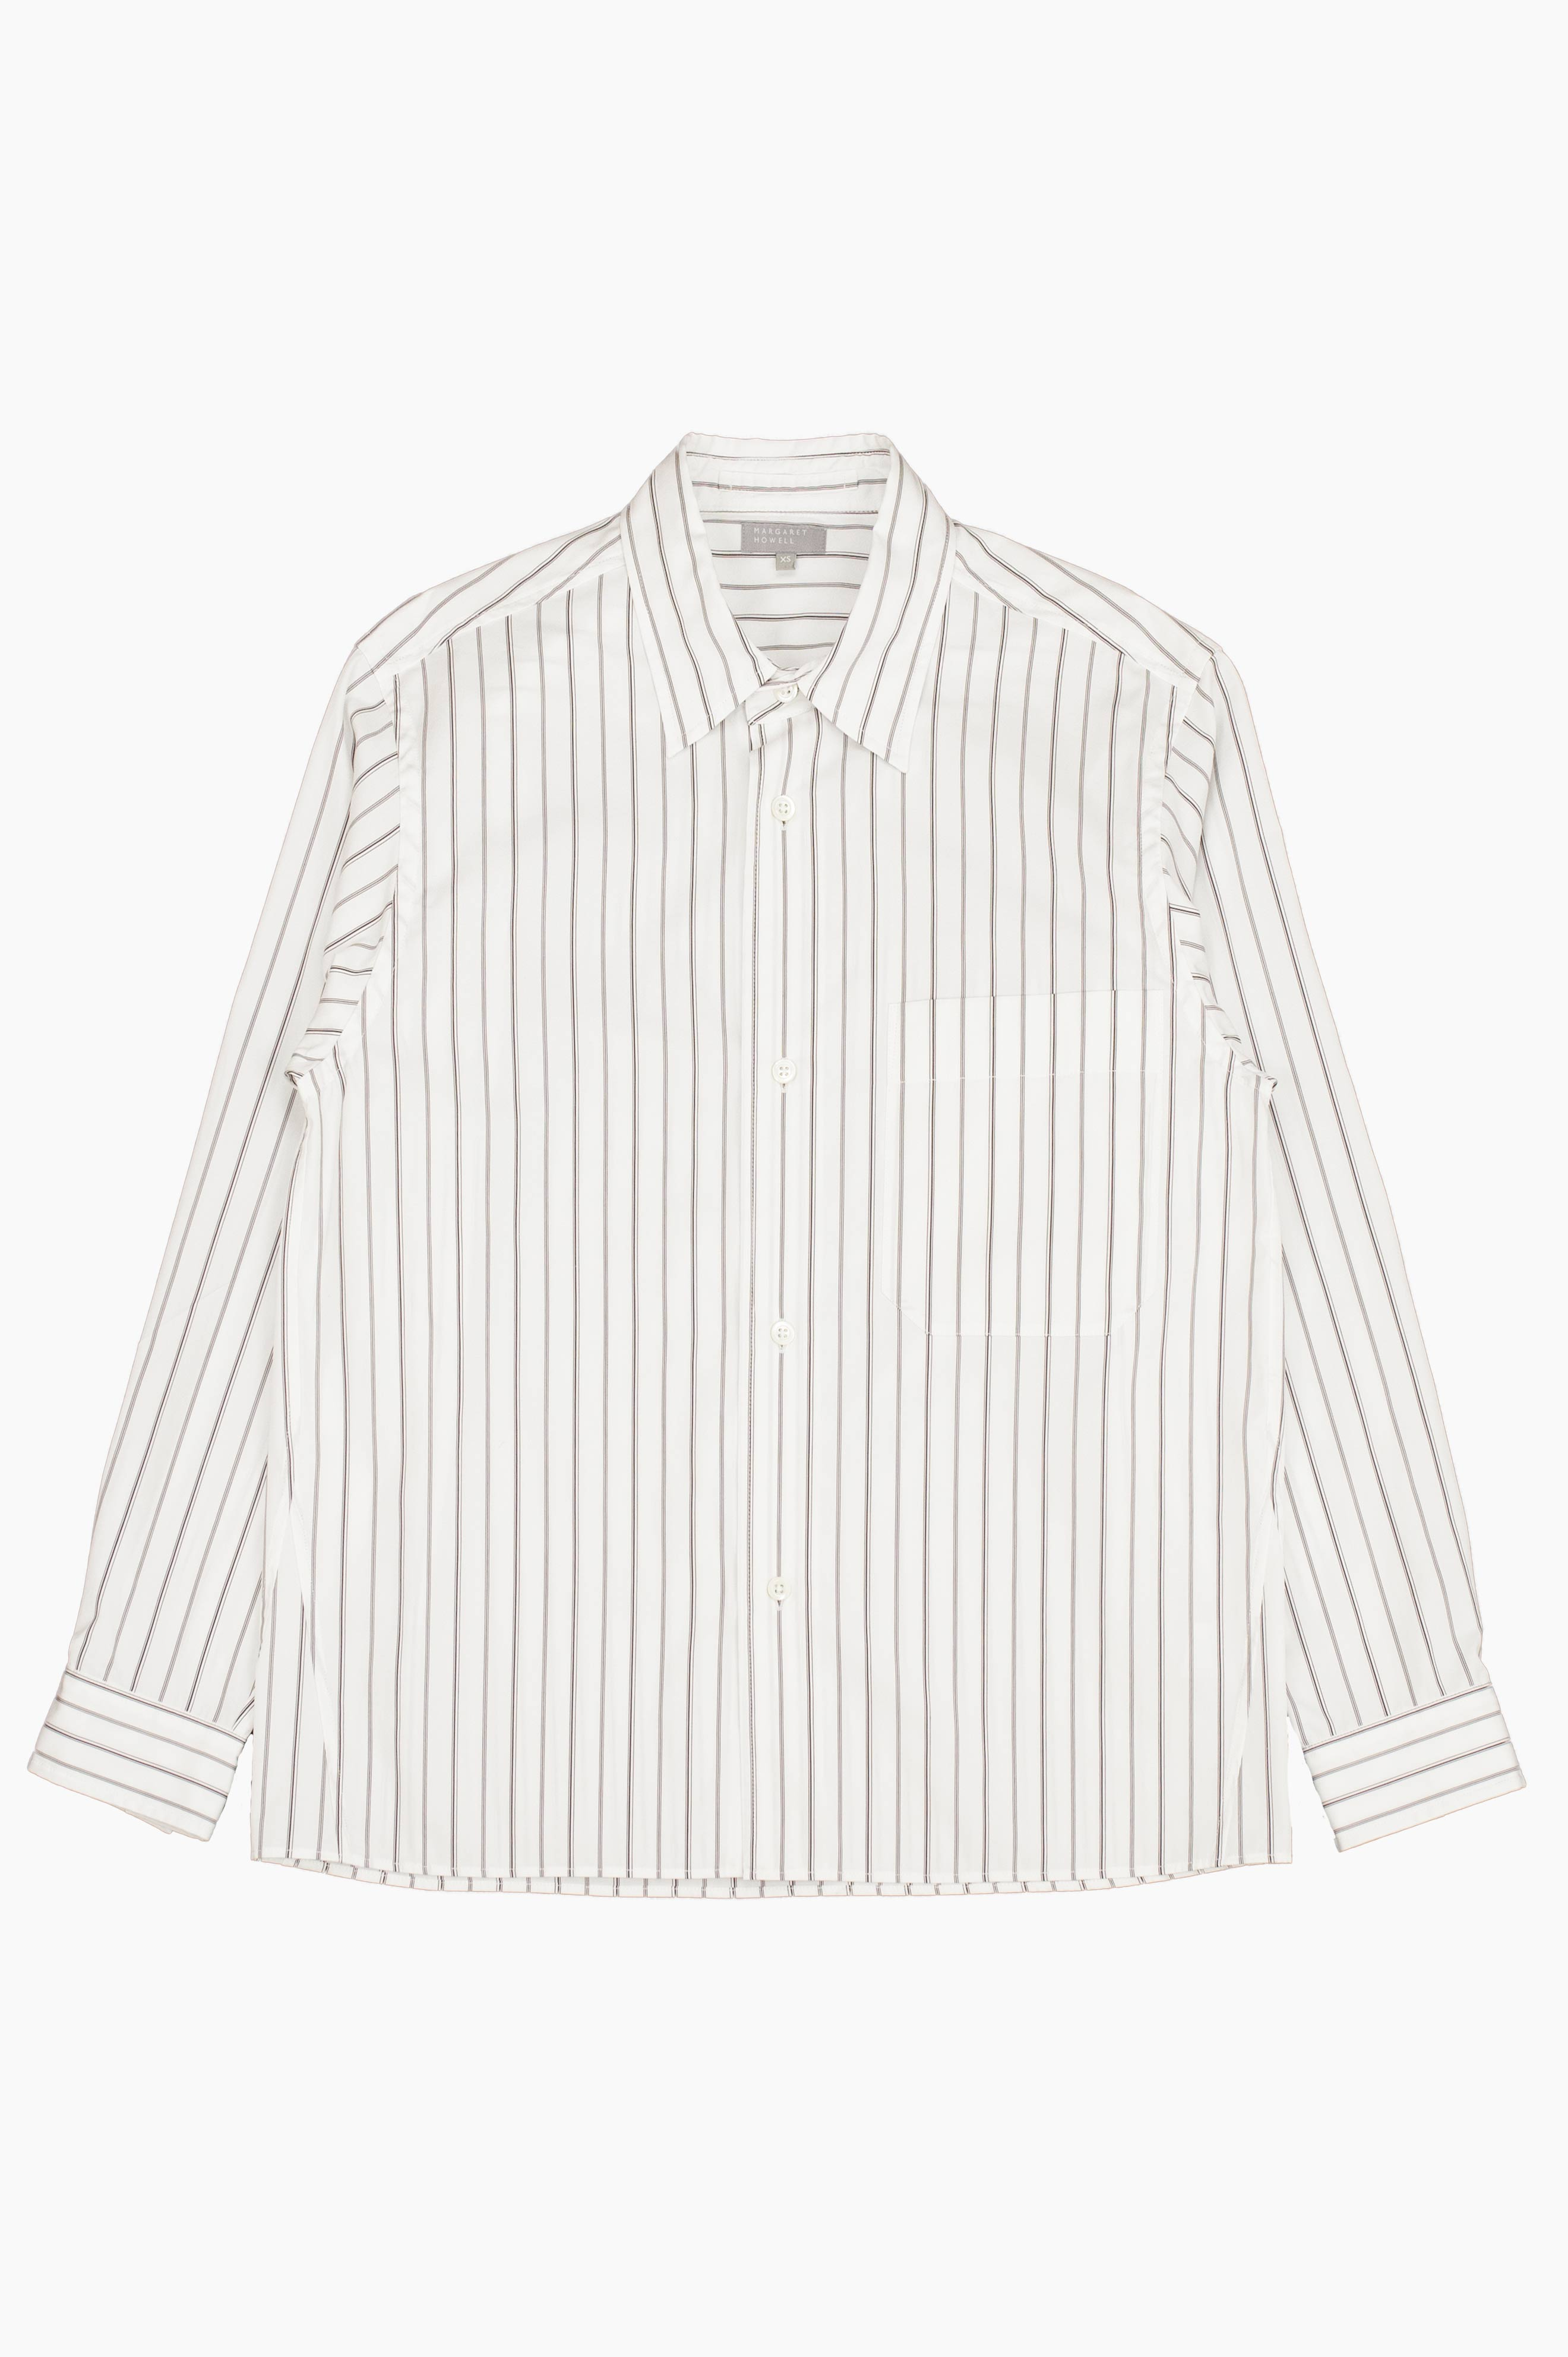 Oversized Shirt Triple Stripe White/Brown